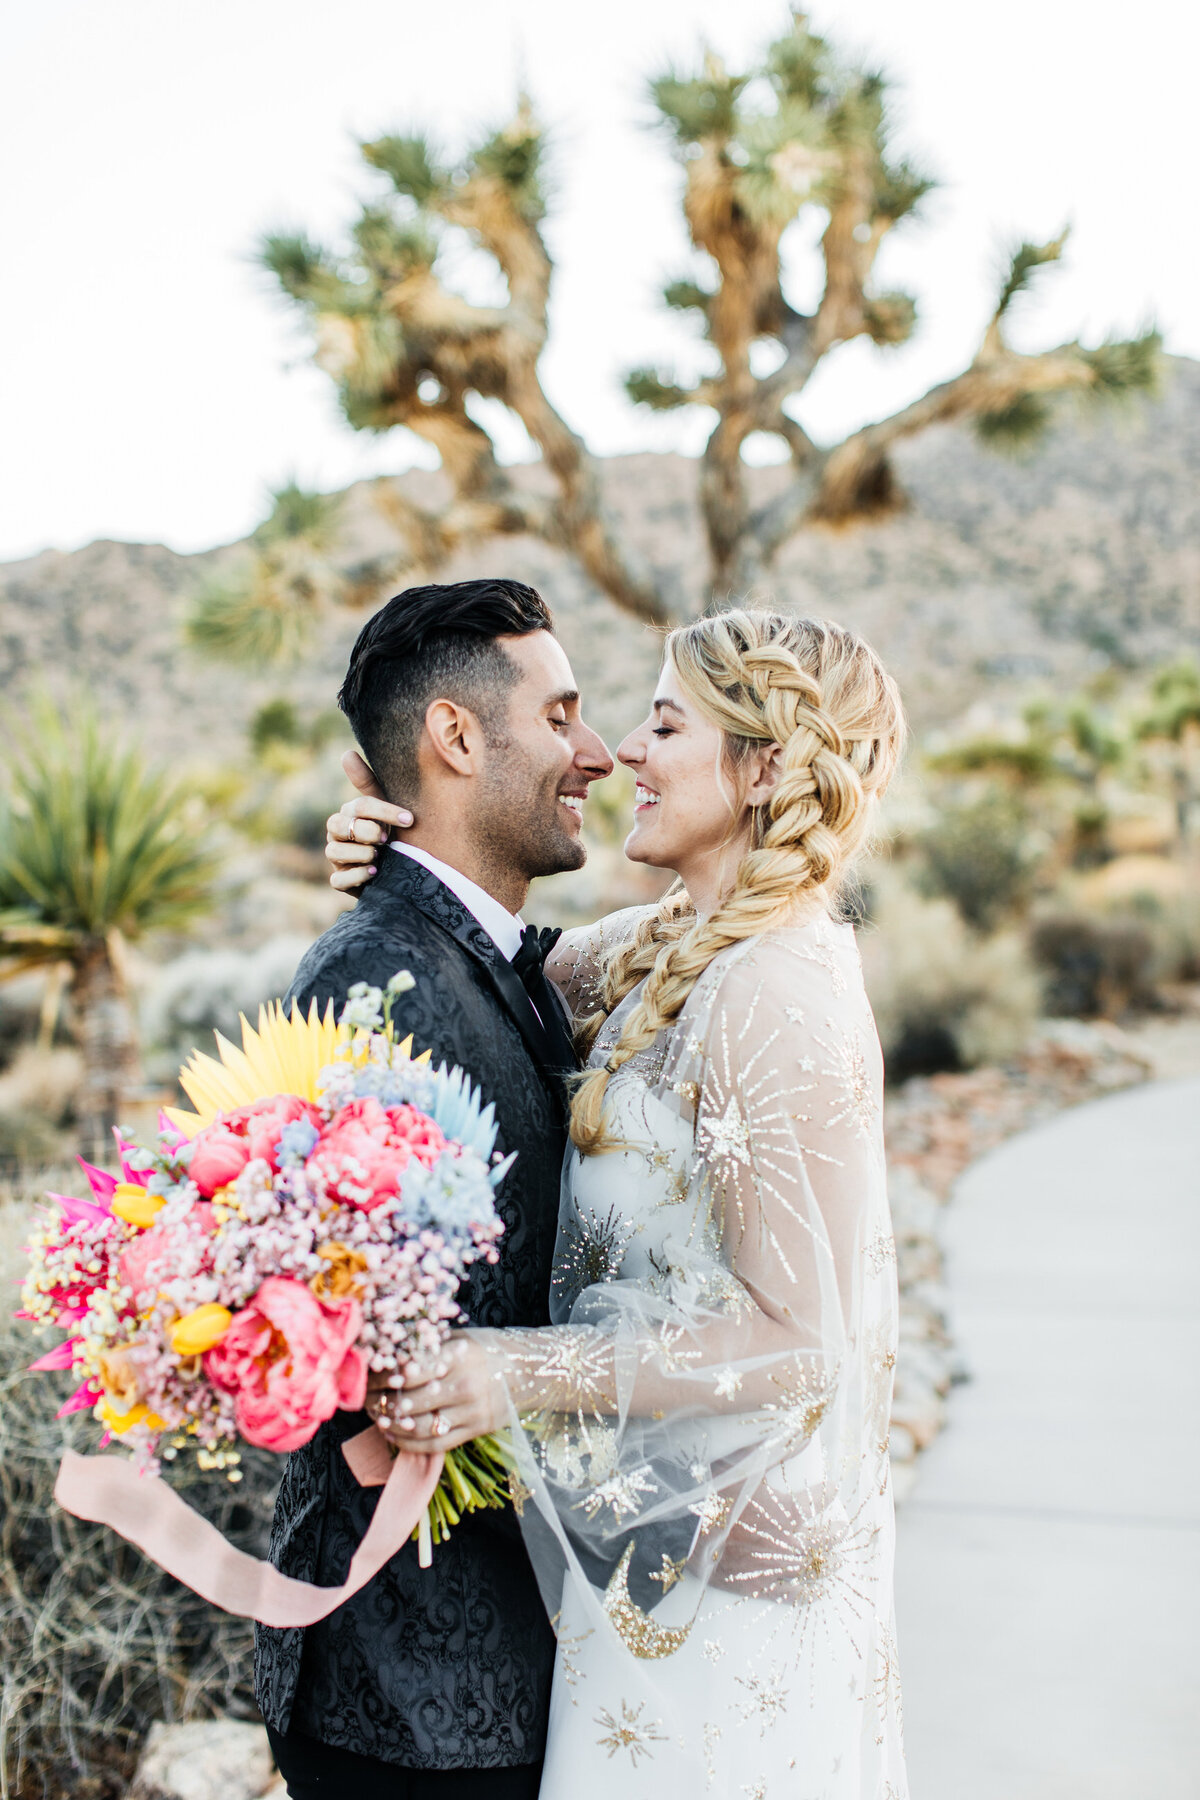 colorful-joshua-tree-elopement-inspiration-joshua-tree-wedding-photographer-palm-springs-wedding-photographer-erin-marton-photography-42